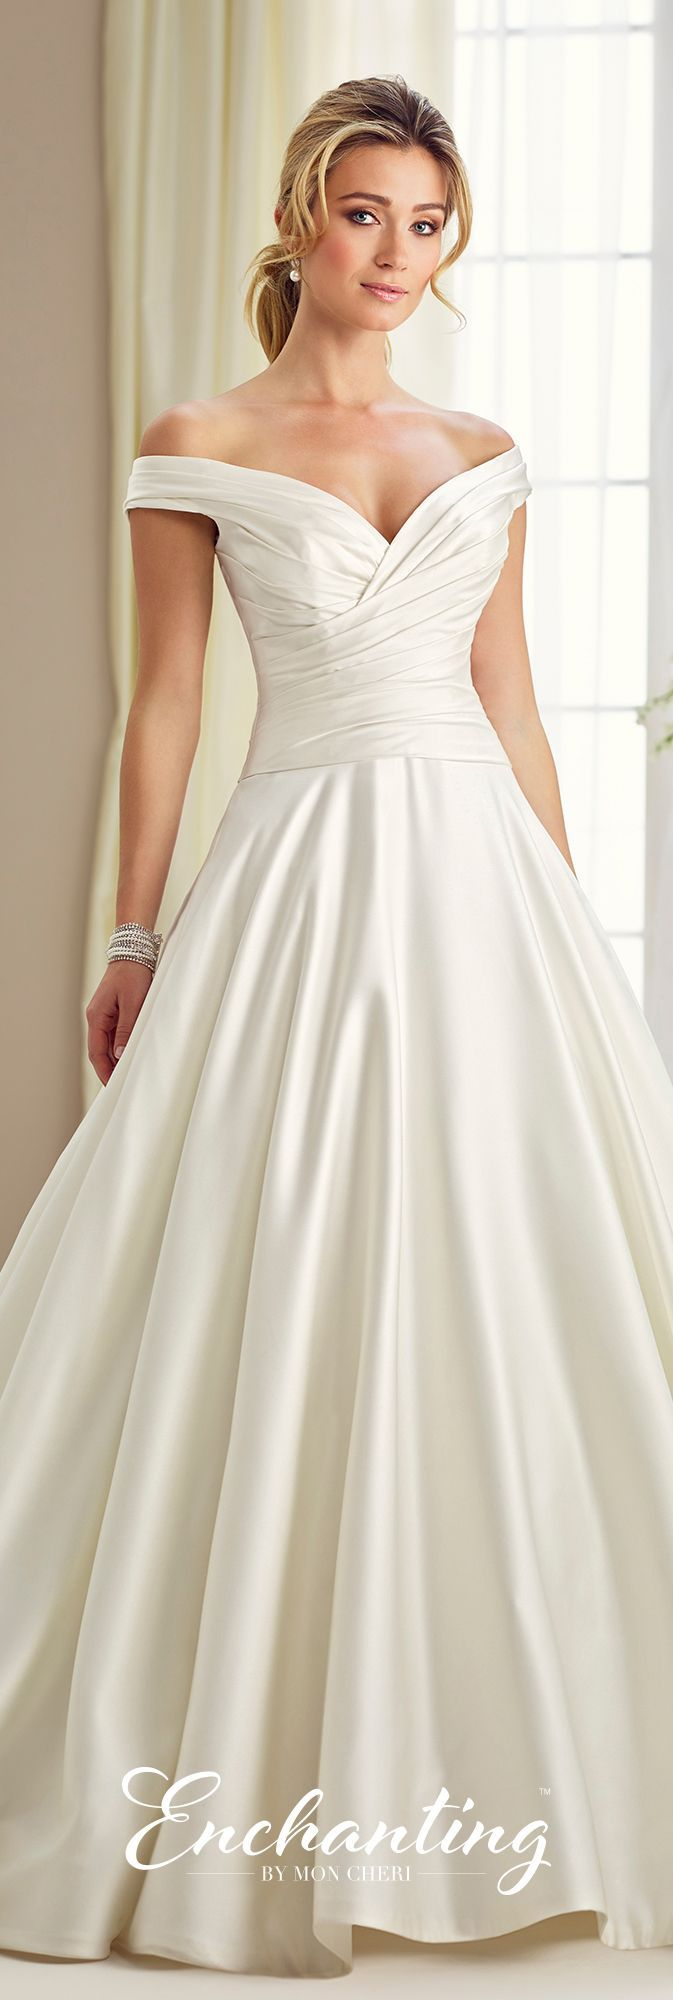 best my wedding ideas in future of course images on pinterest